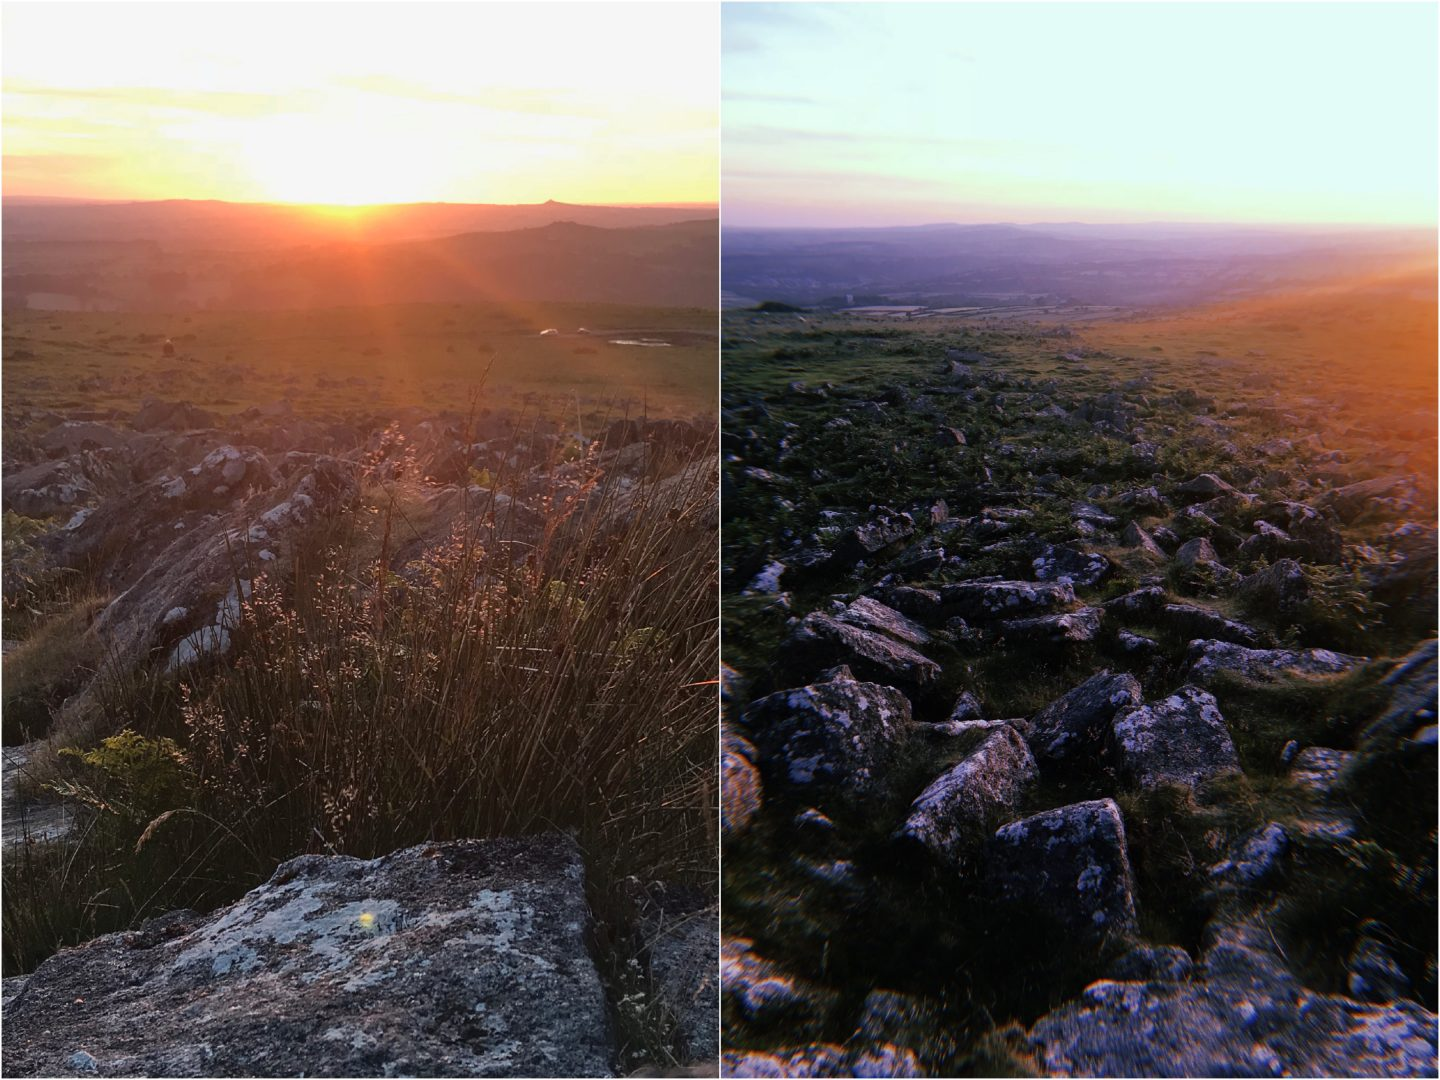 Sunset on Dartmoor